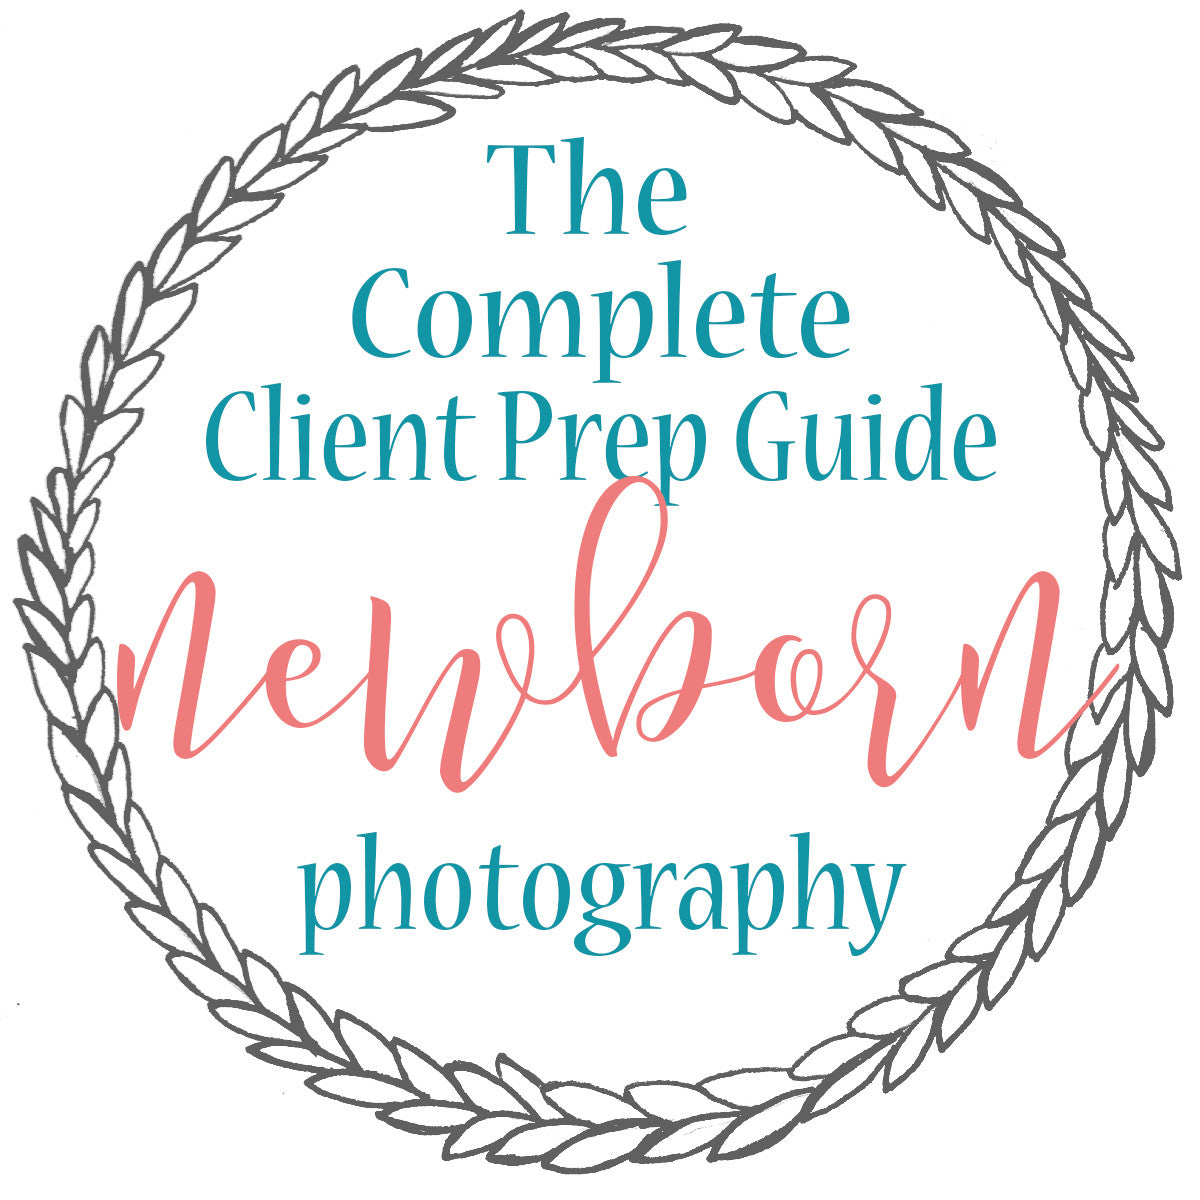 The Complete Client Prep Guide for Newborns